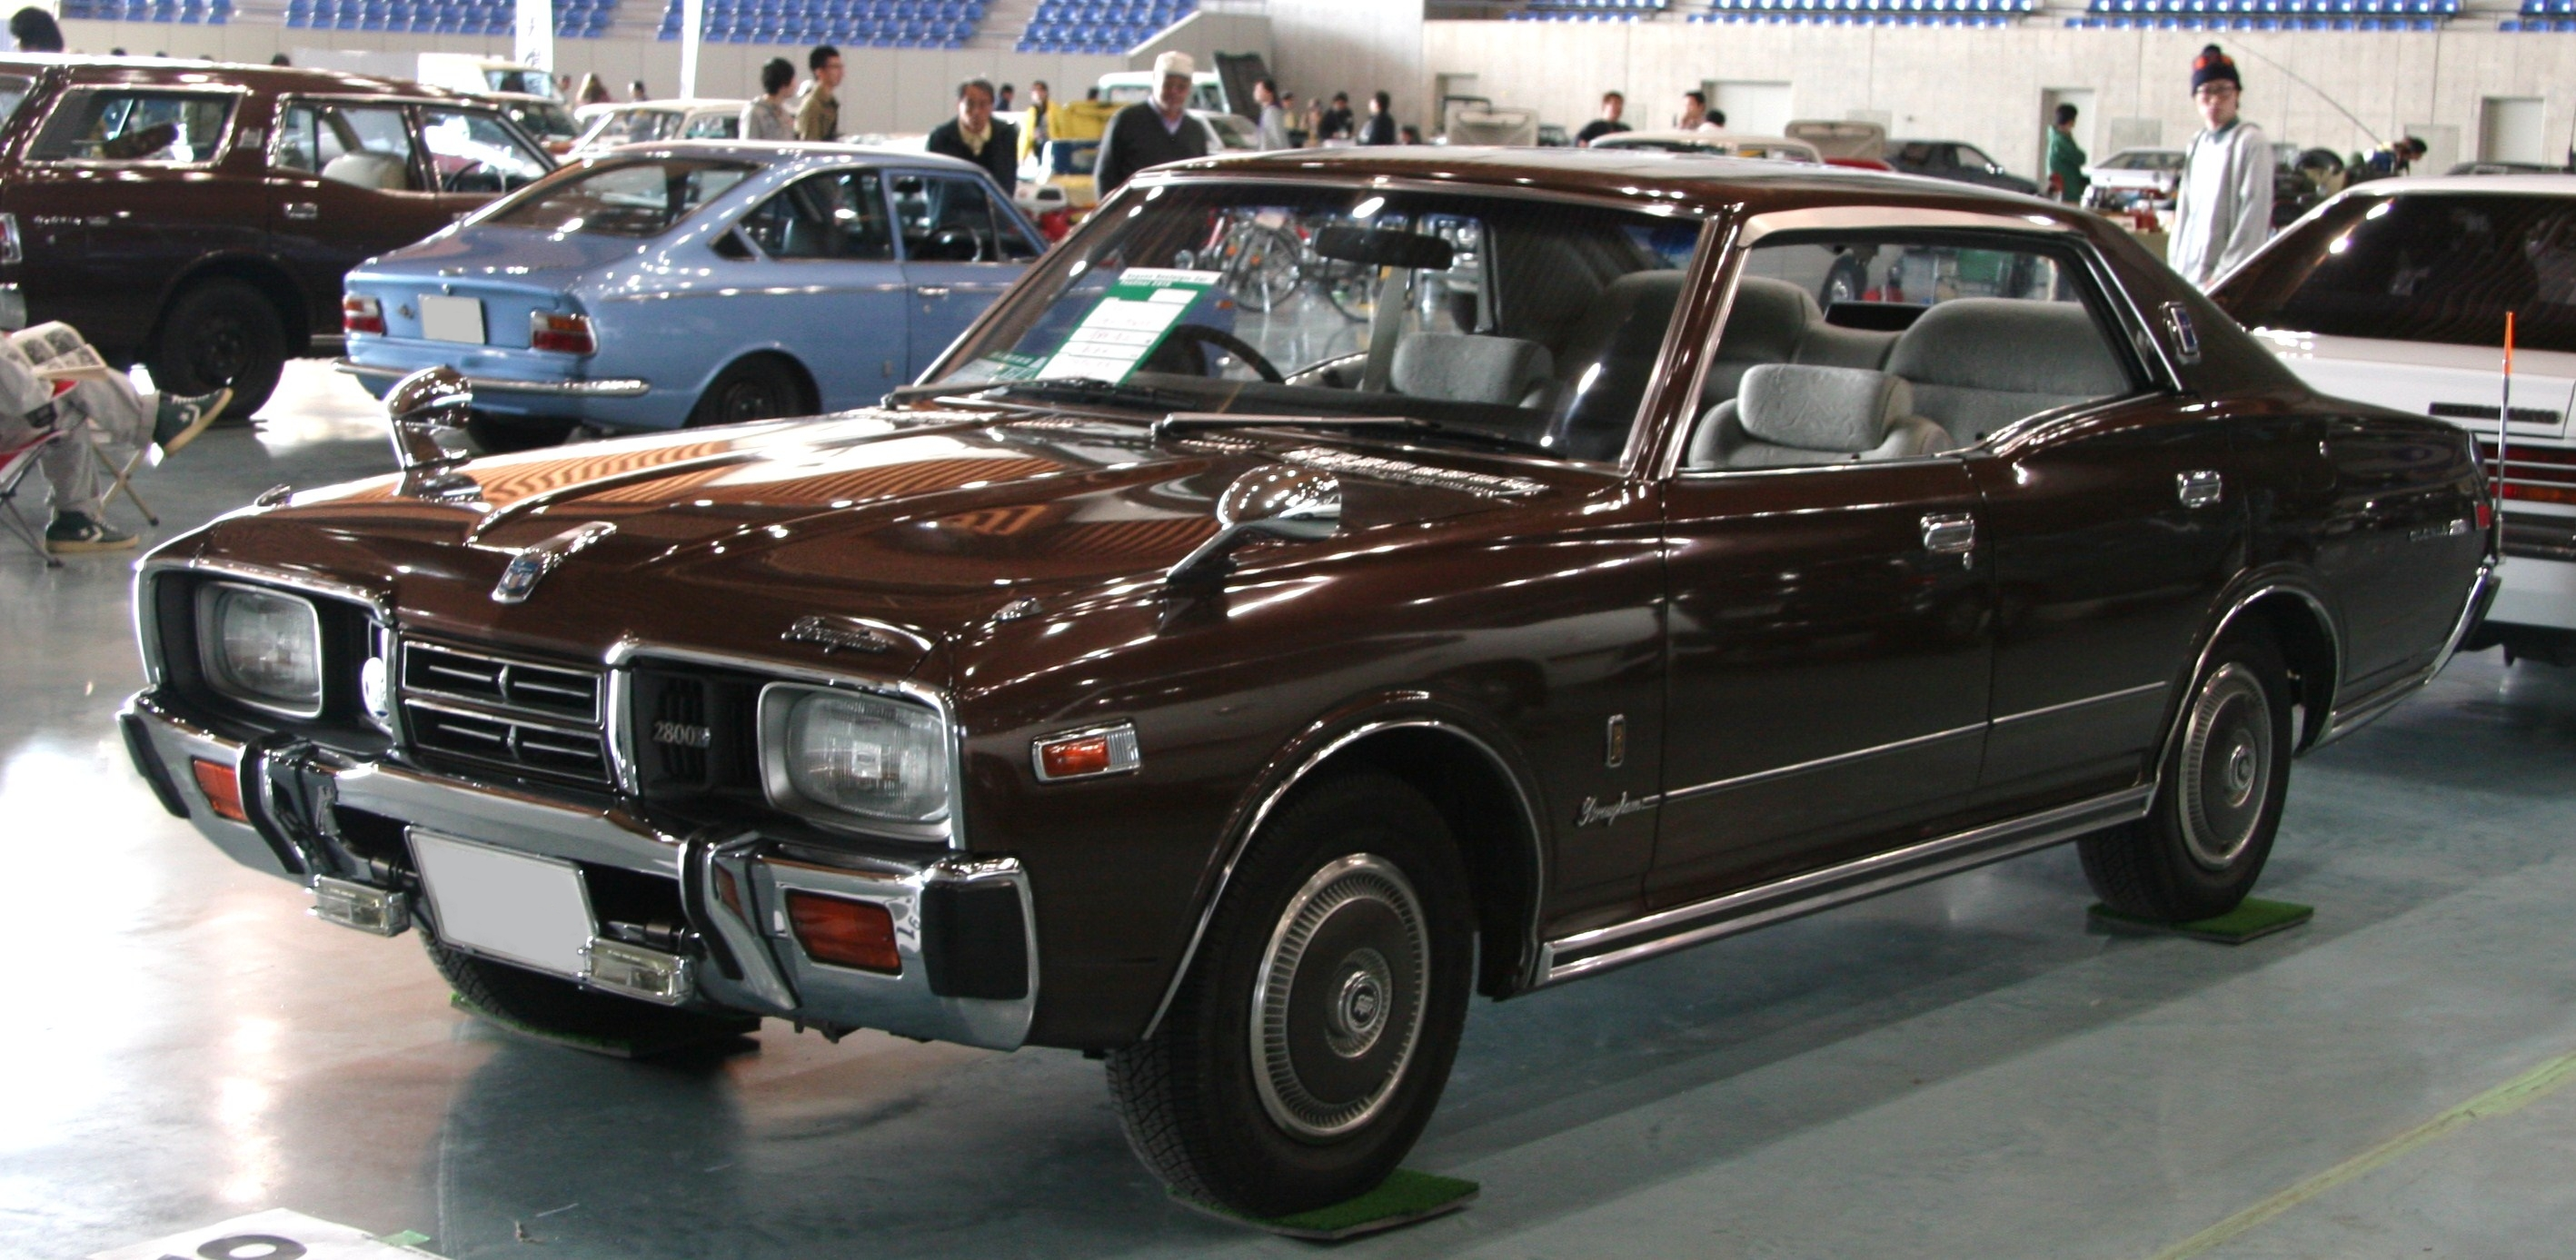 nissan gloria images #4